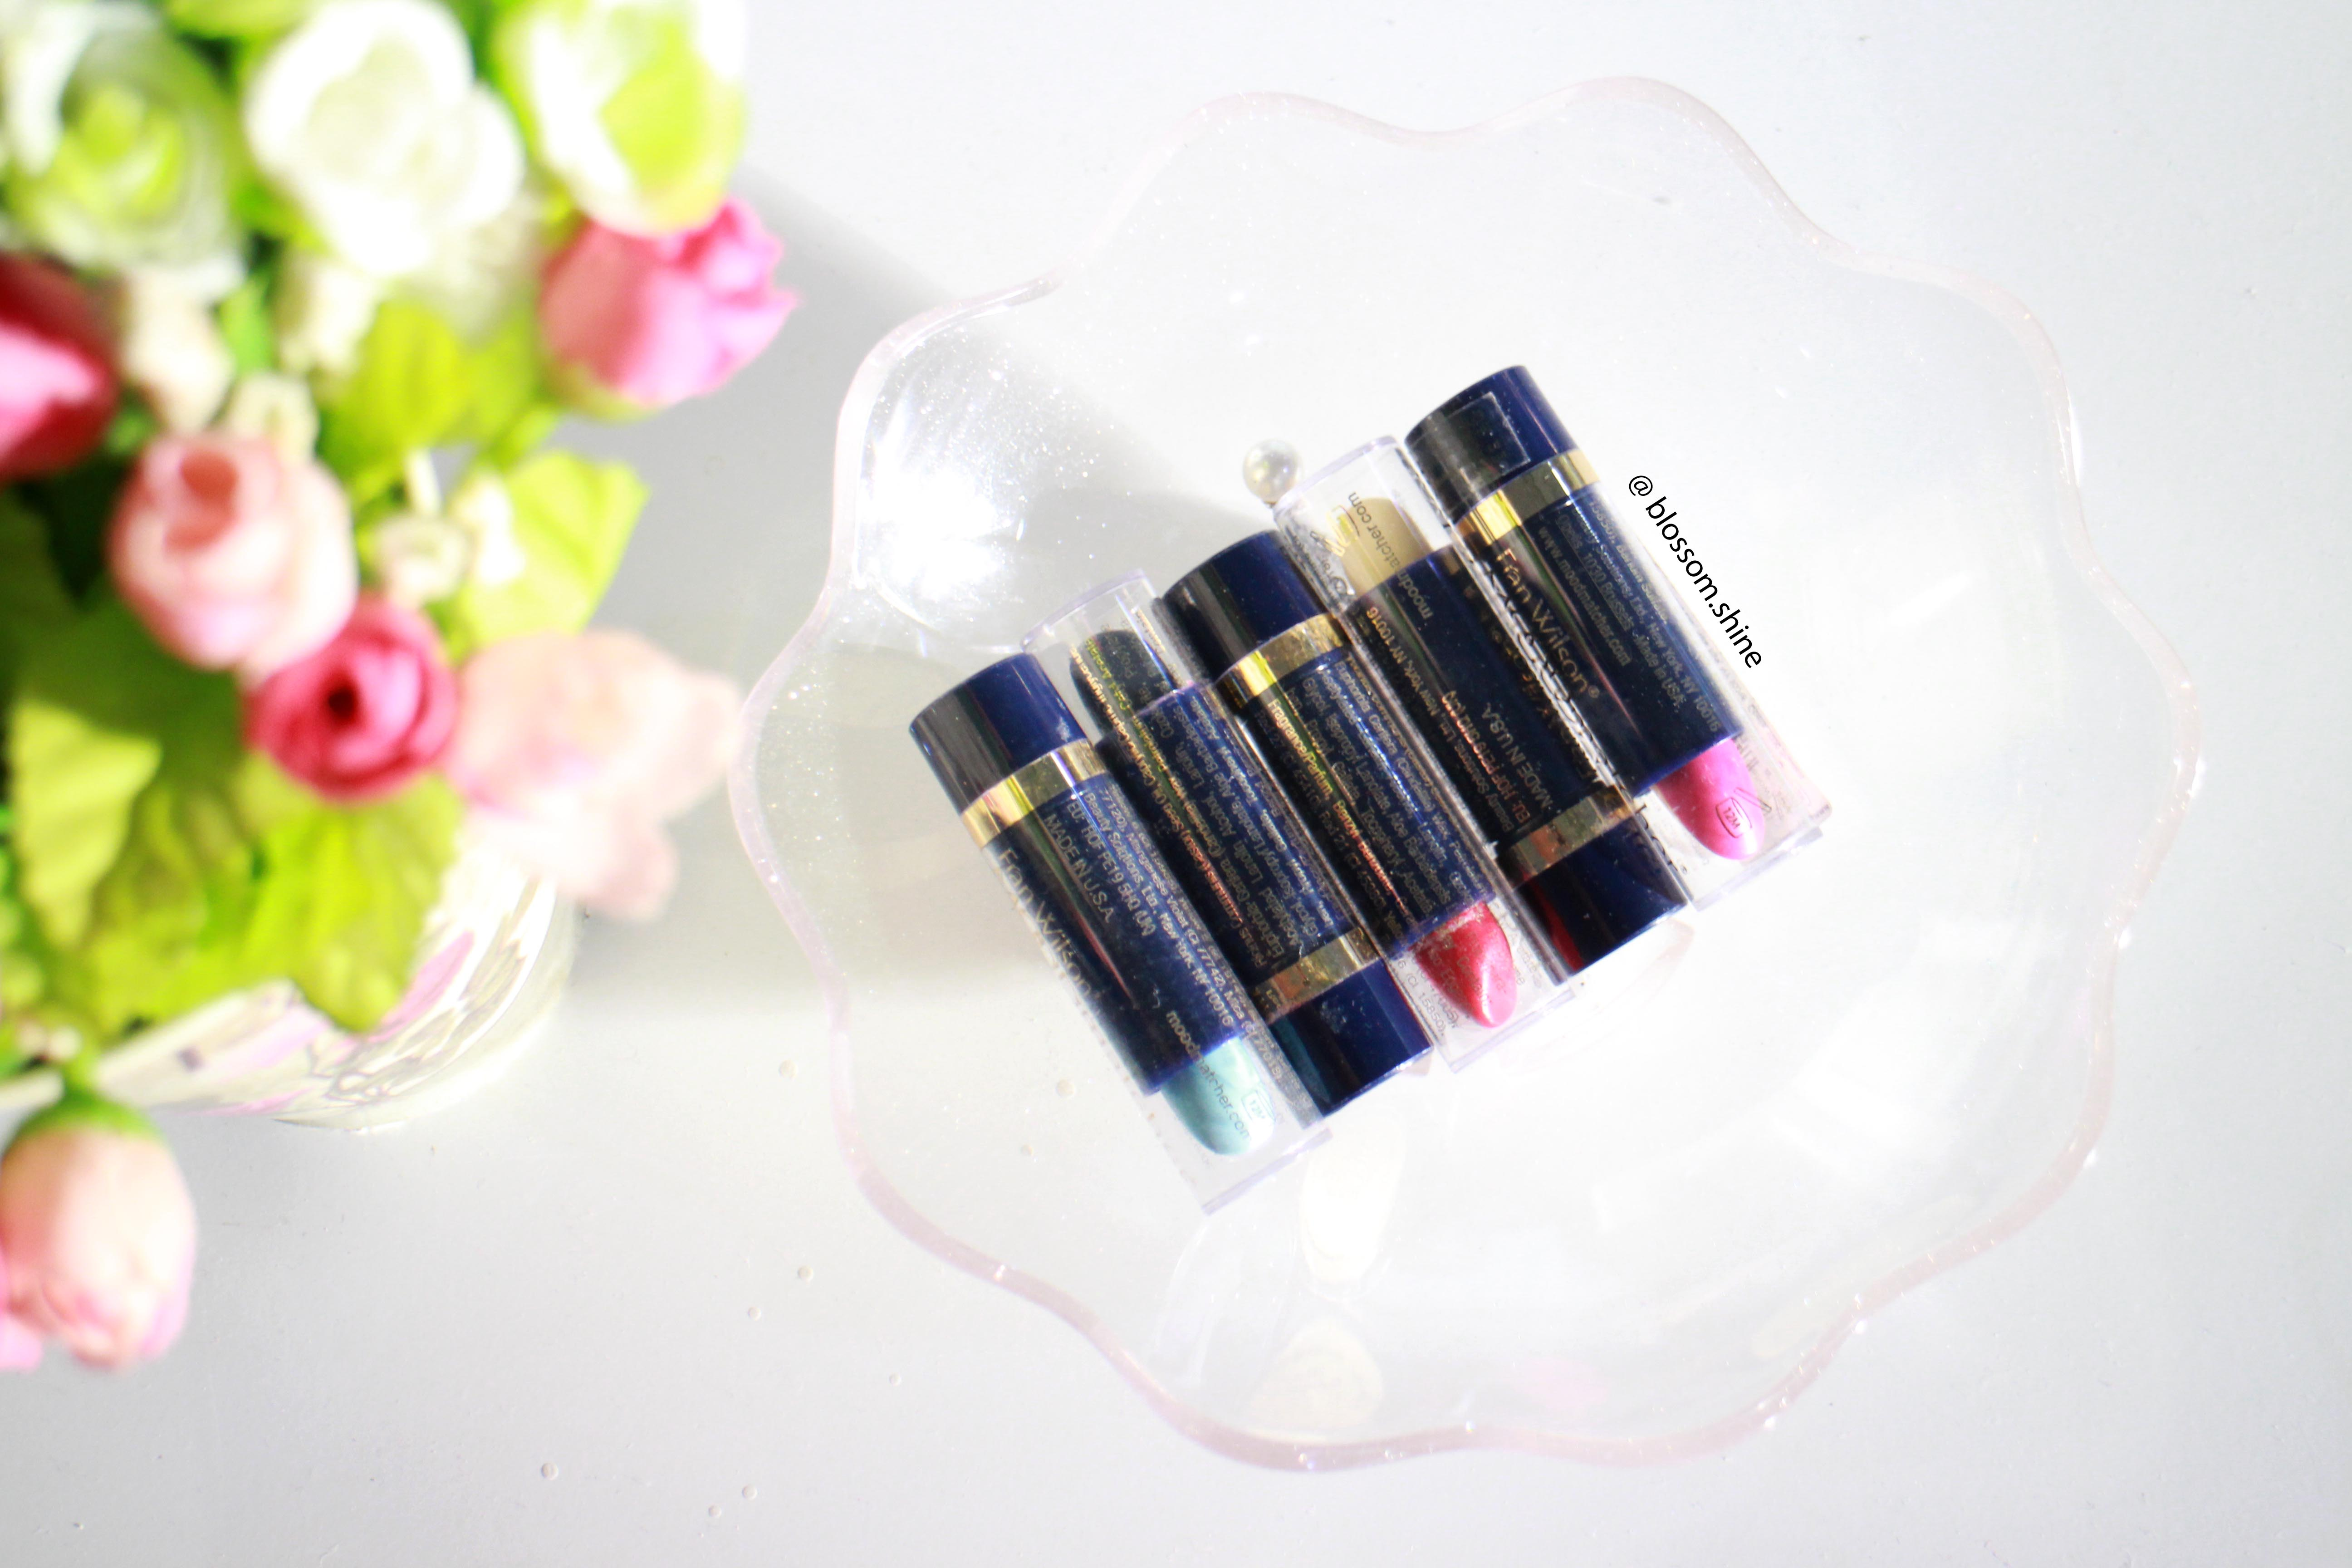 Moodmatcher Lipstick [ MAKEUP REVIEW]